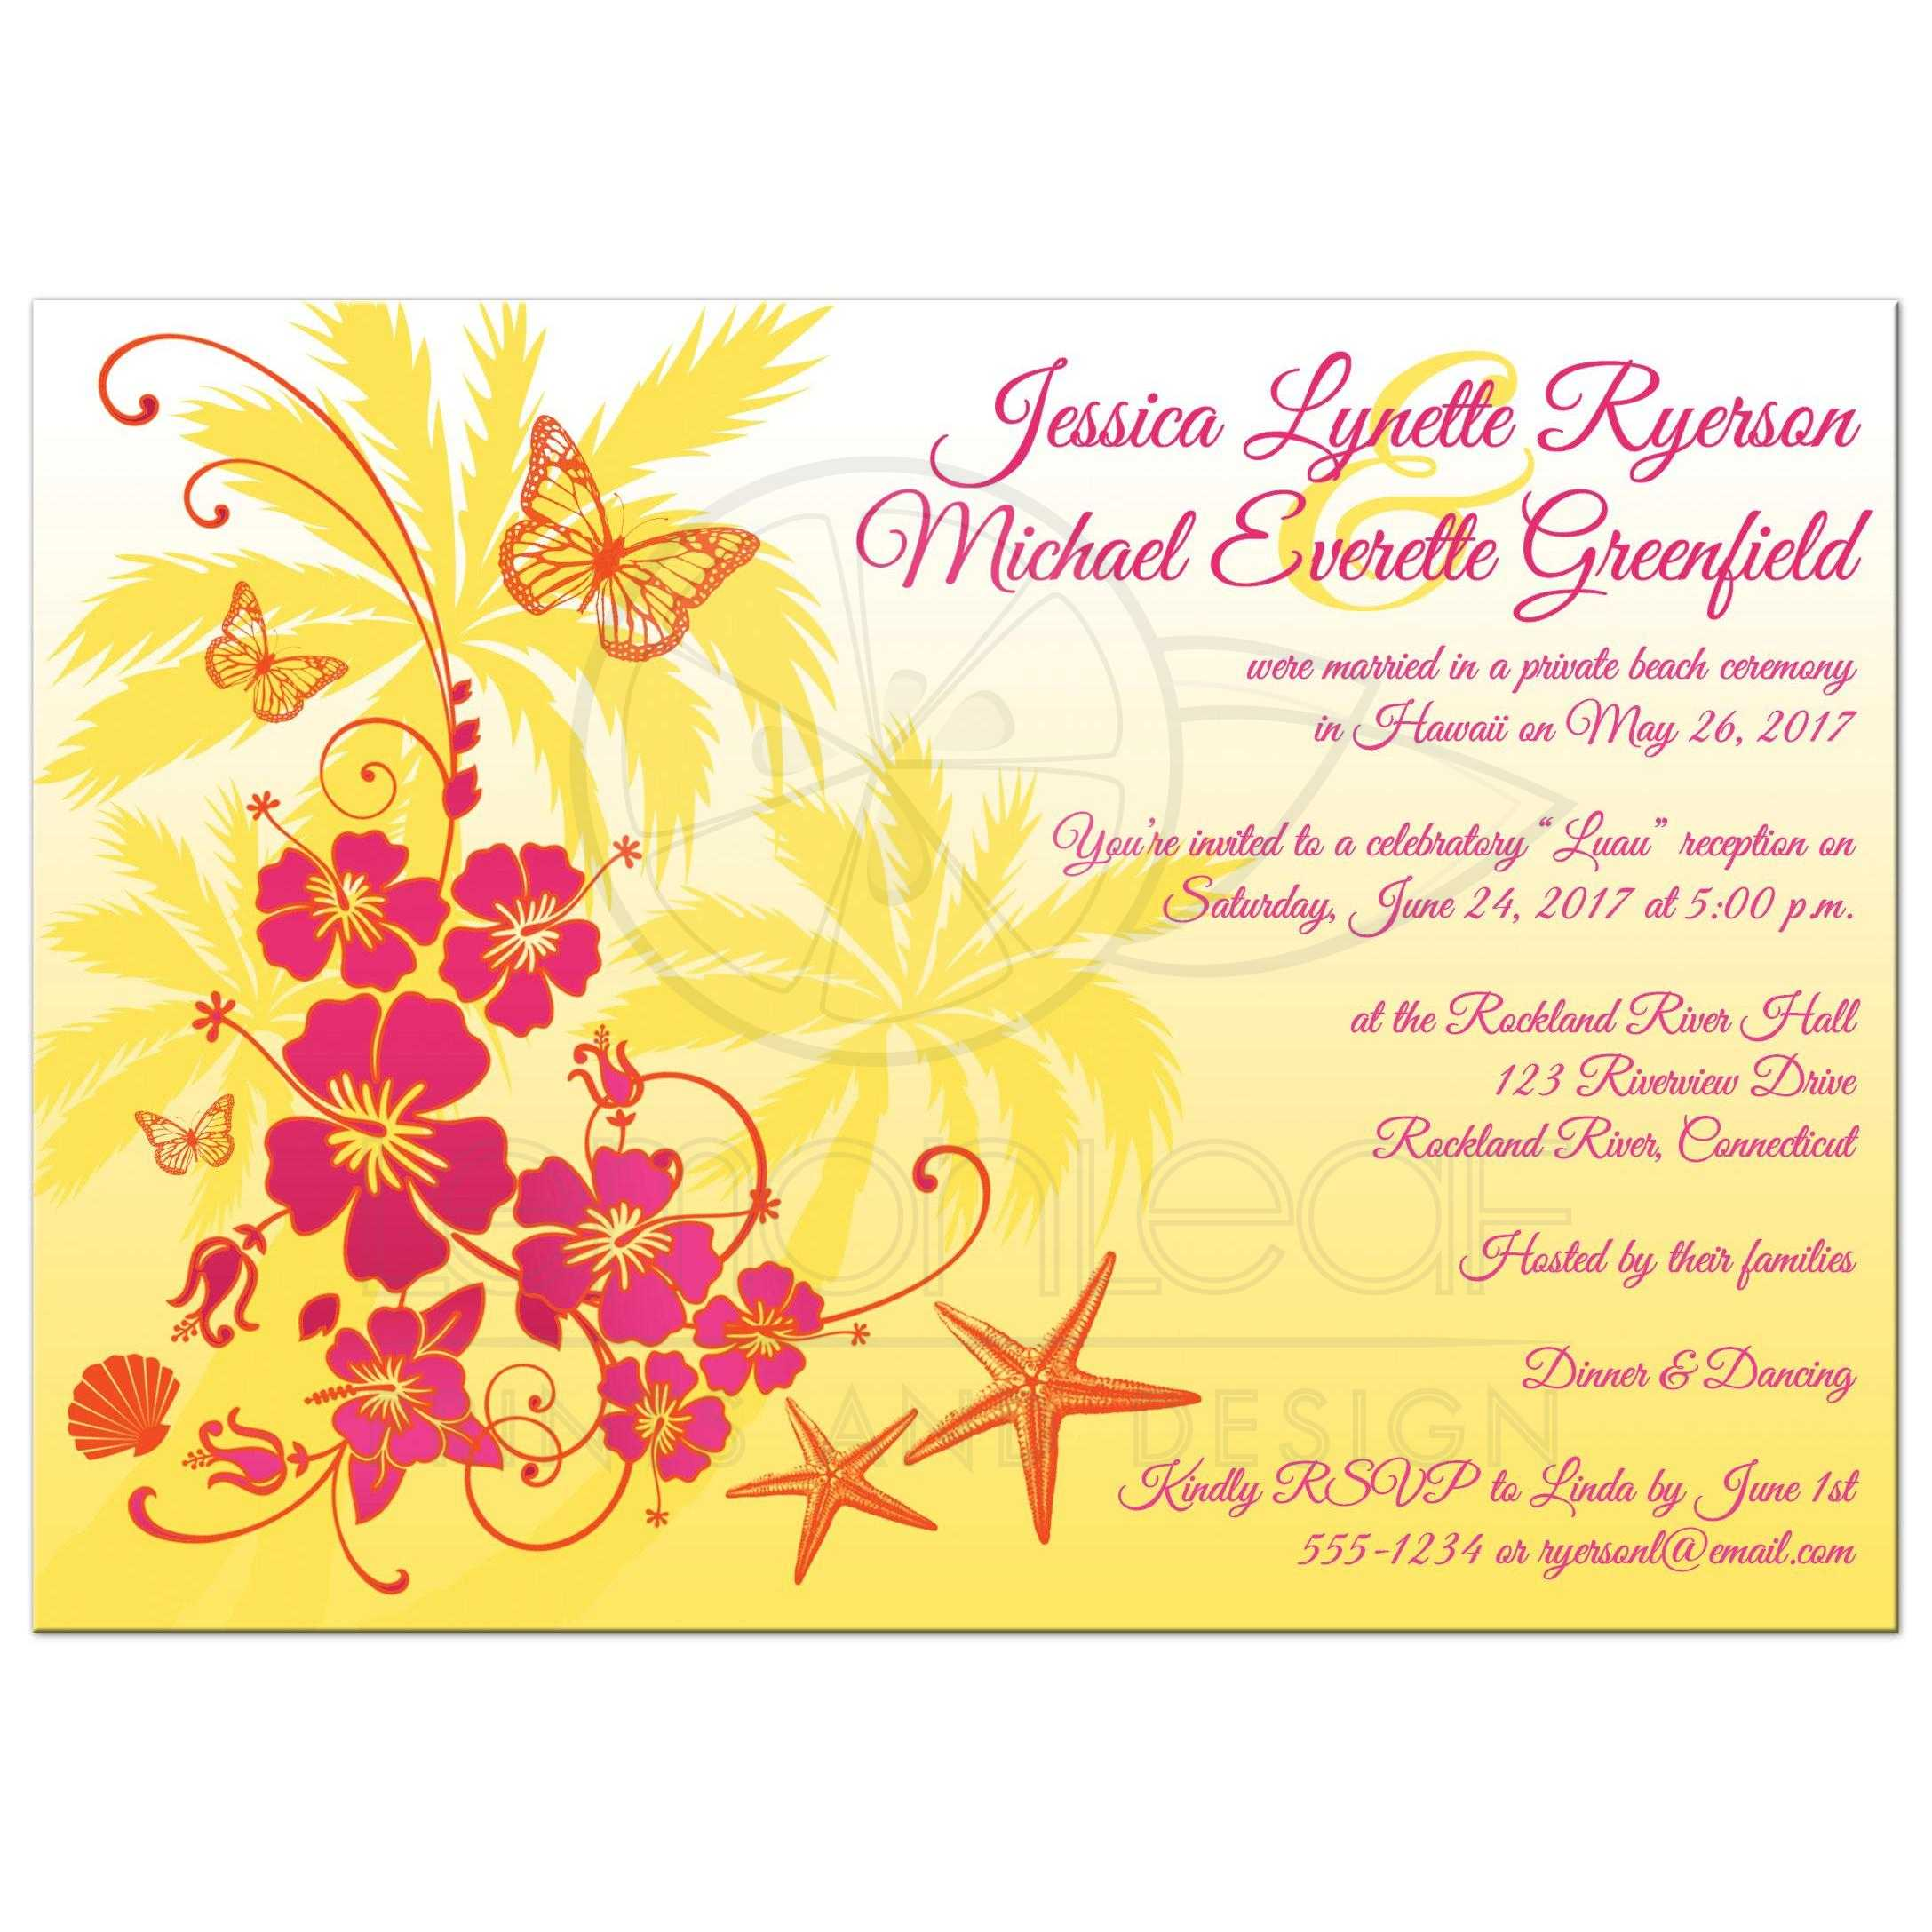 post wedding reception invitation yellow fuchsia orange white